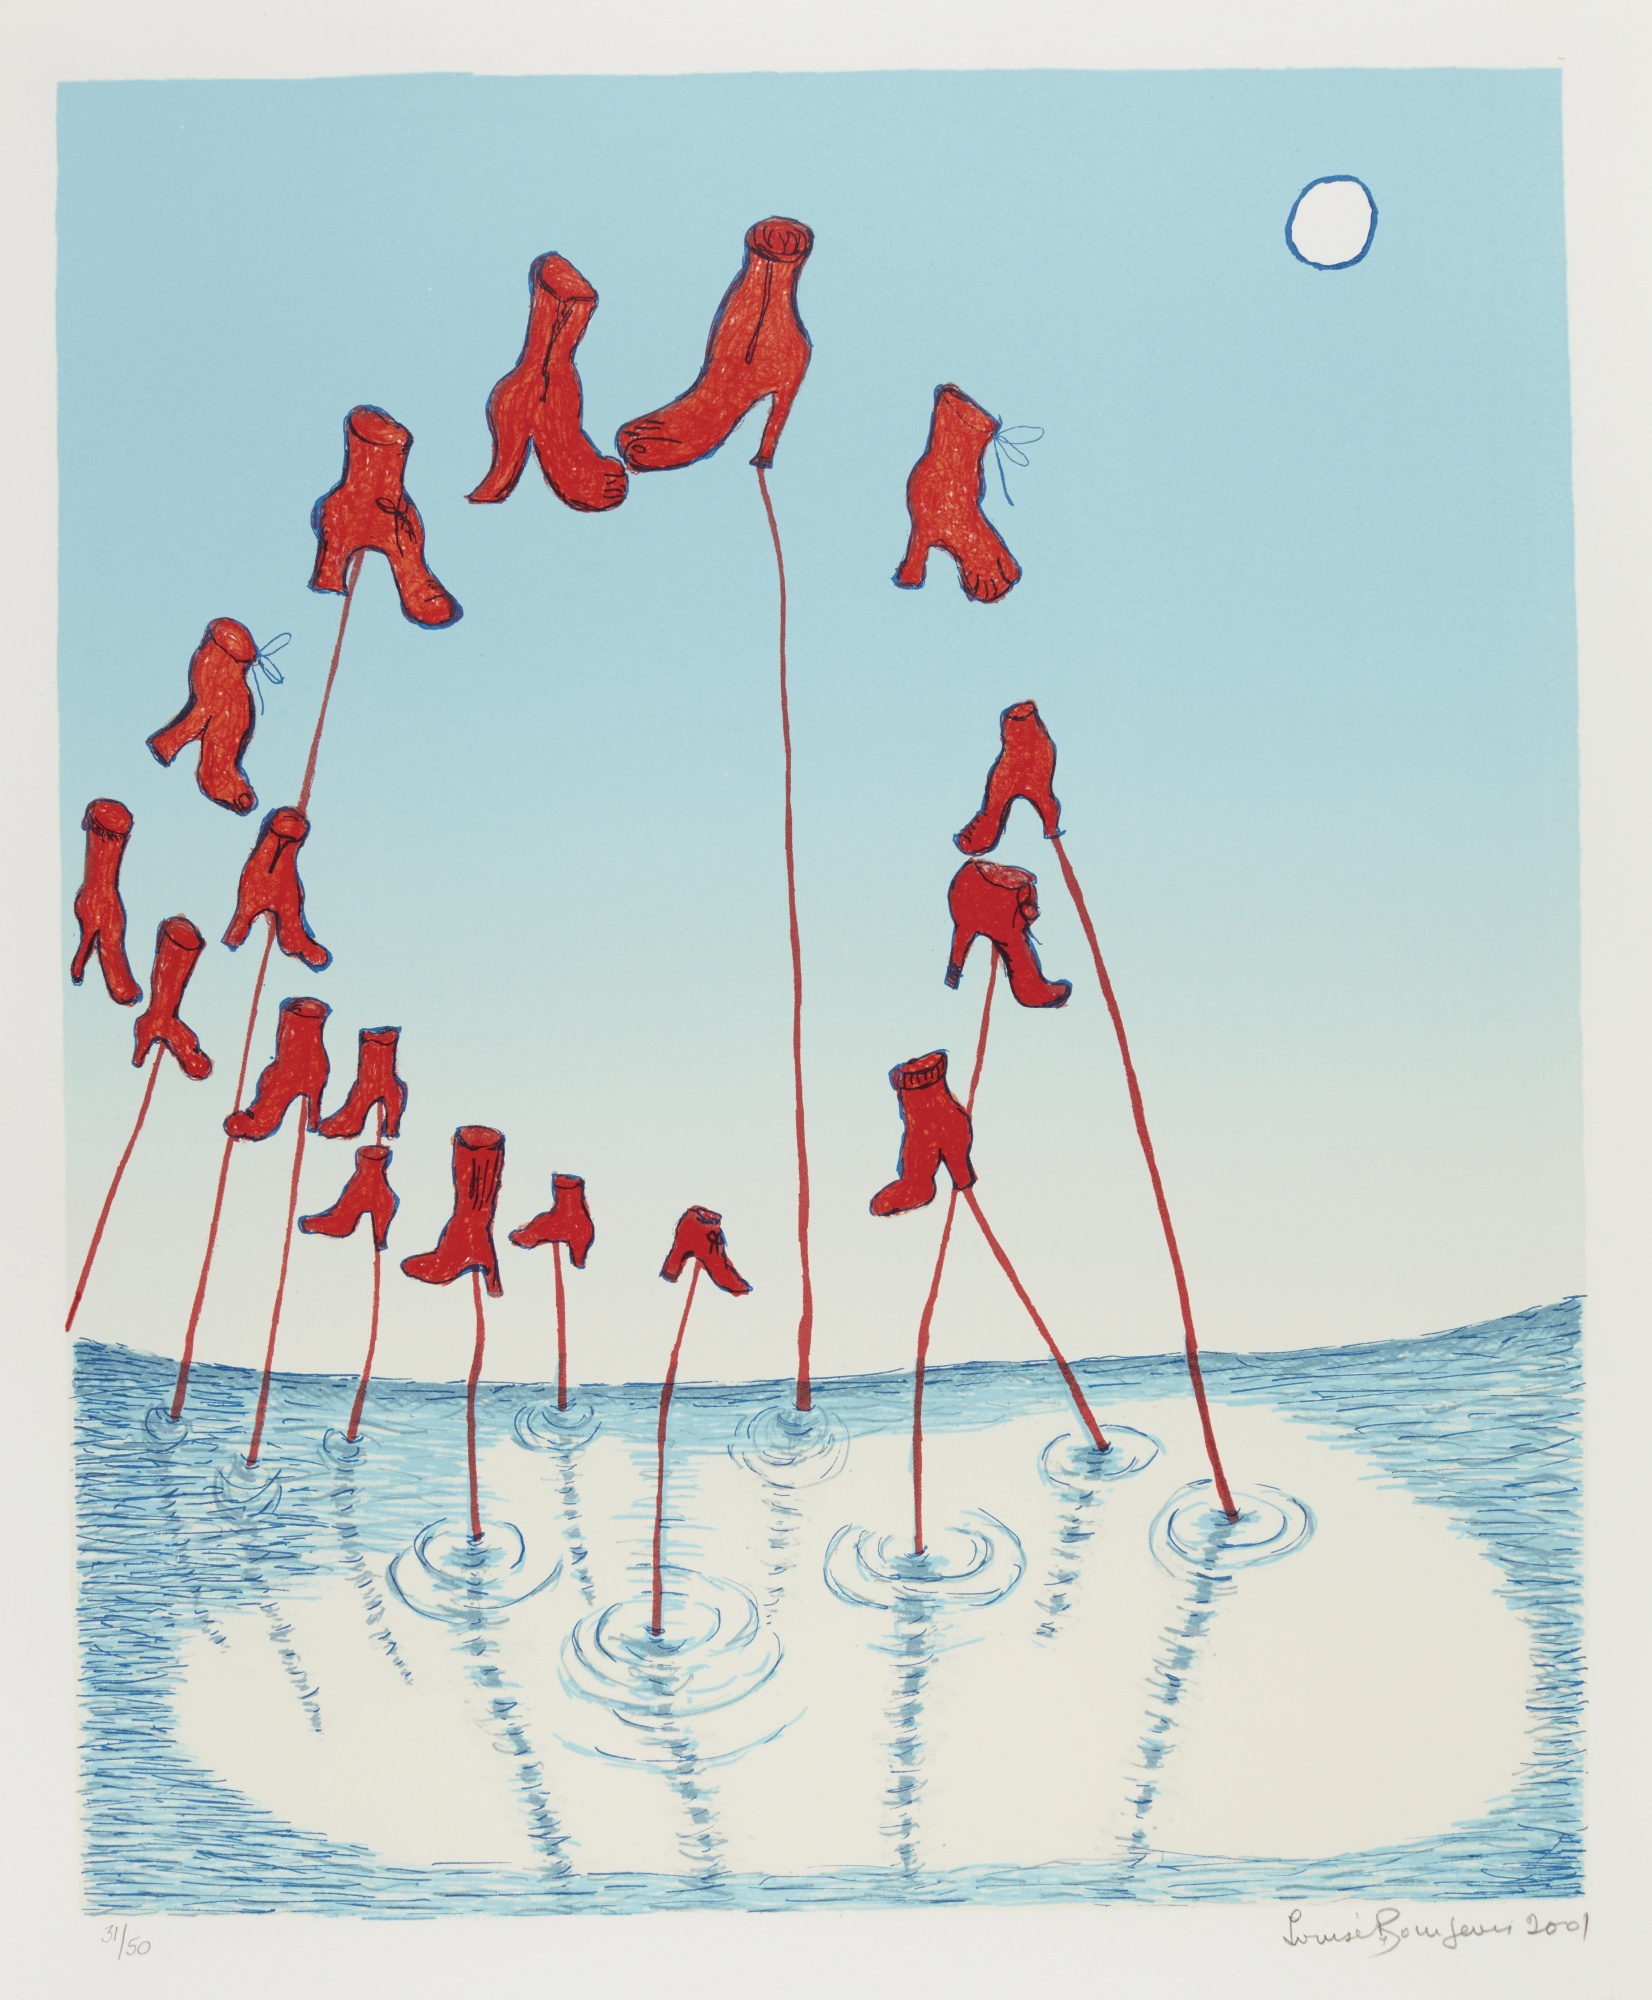 Louise Bourgeois-The Night (Moma 427.2)-2001